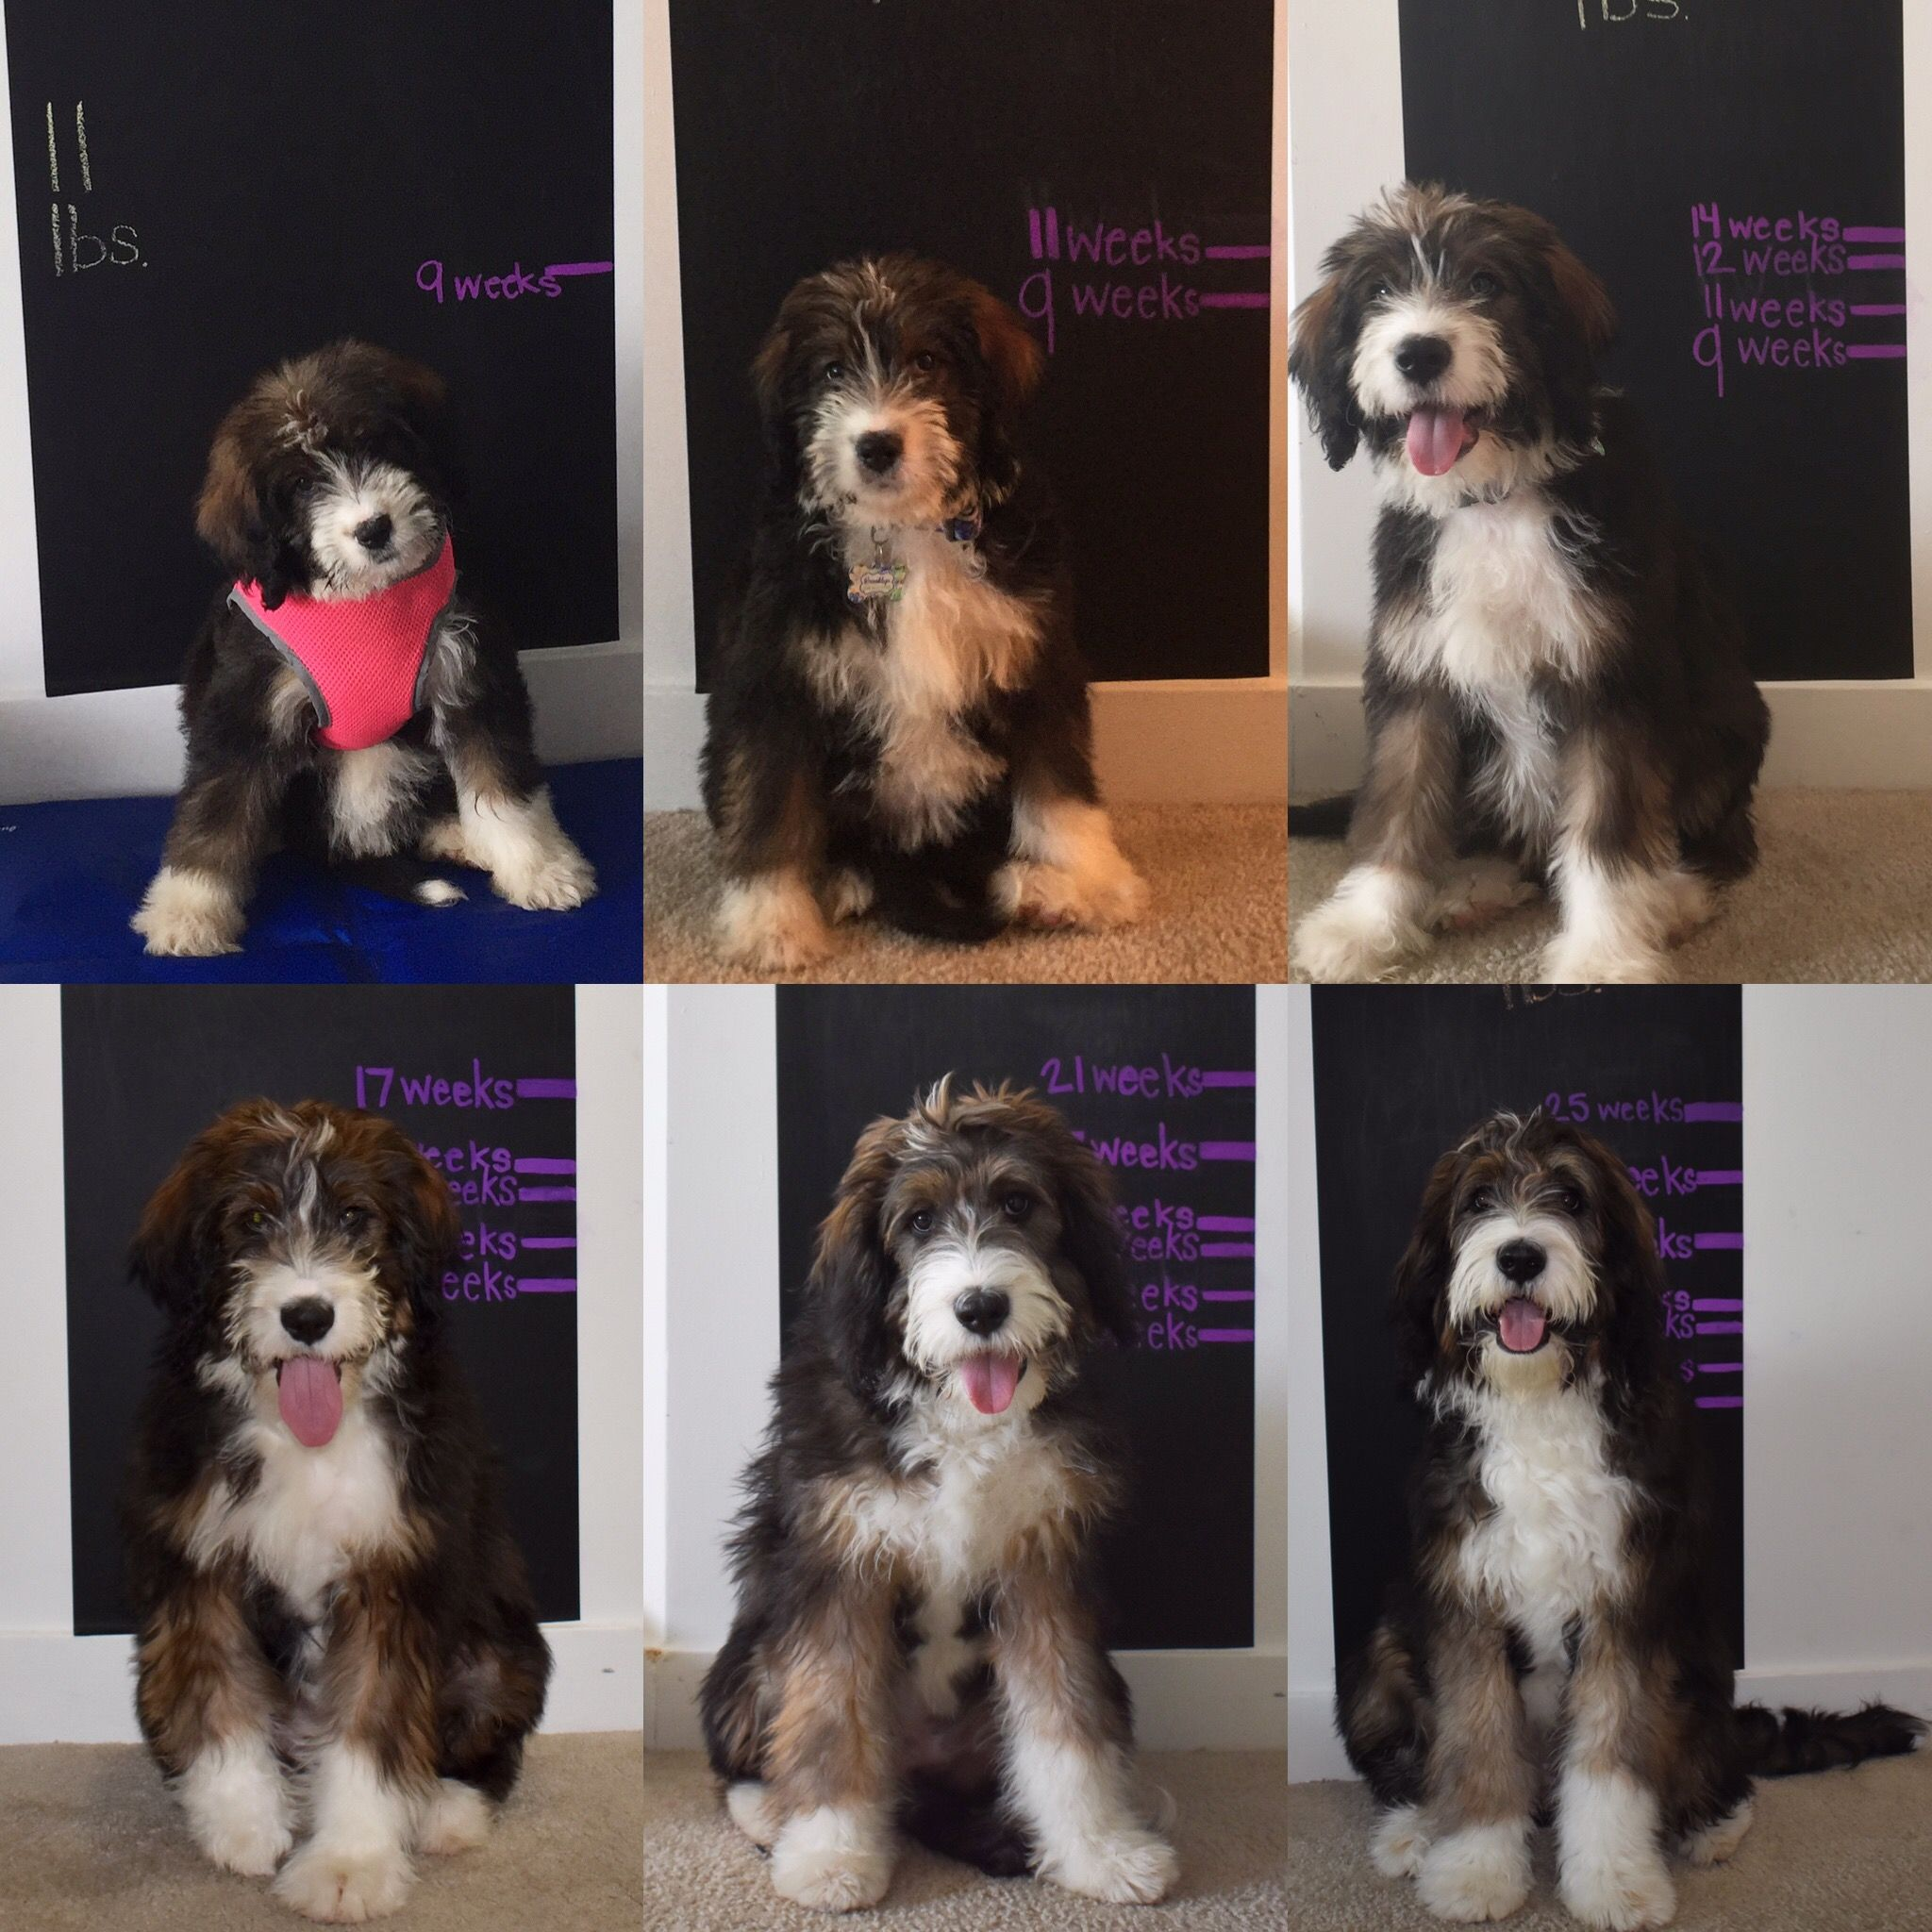 Growth chart for puppy puppy growth picture chalkboard doodle growth chart for puppy puppy growth picture chalkboard doodle geenschuldenfo Image collections